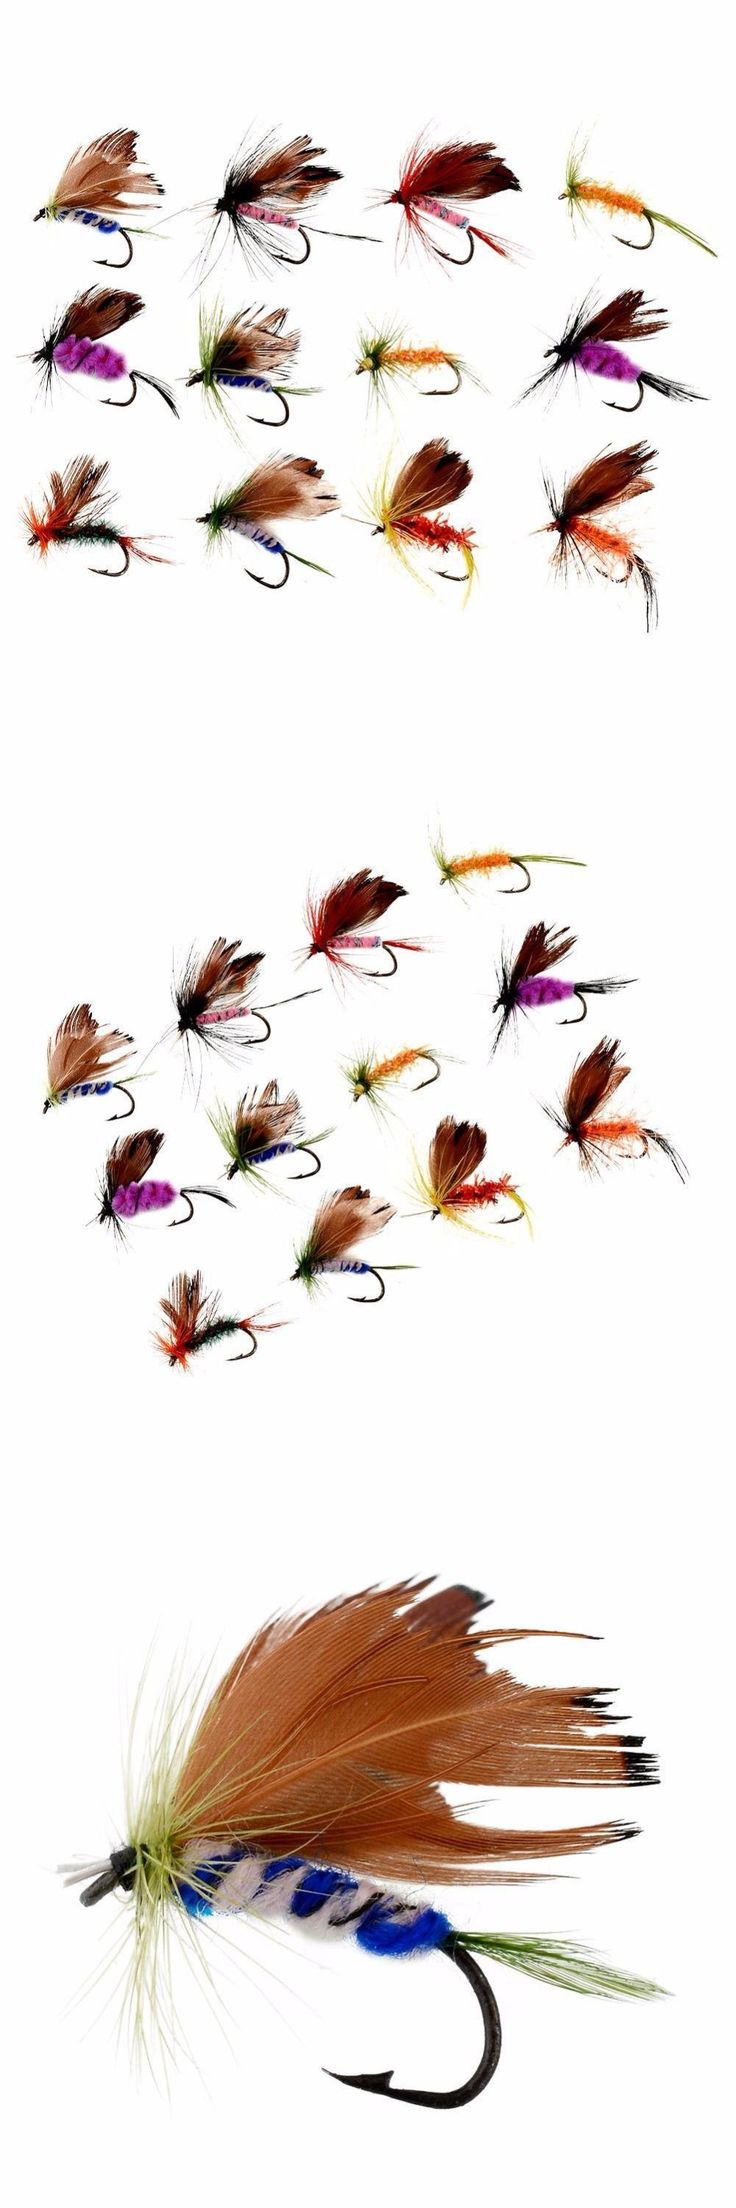 [Visit to Buy] 12Pcs/set Various Dry Fly Fishing Trout Salmon Dry Flies Fish Hook Lures Fishing Pesca #Advertisement